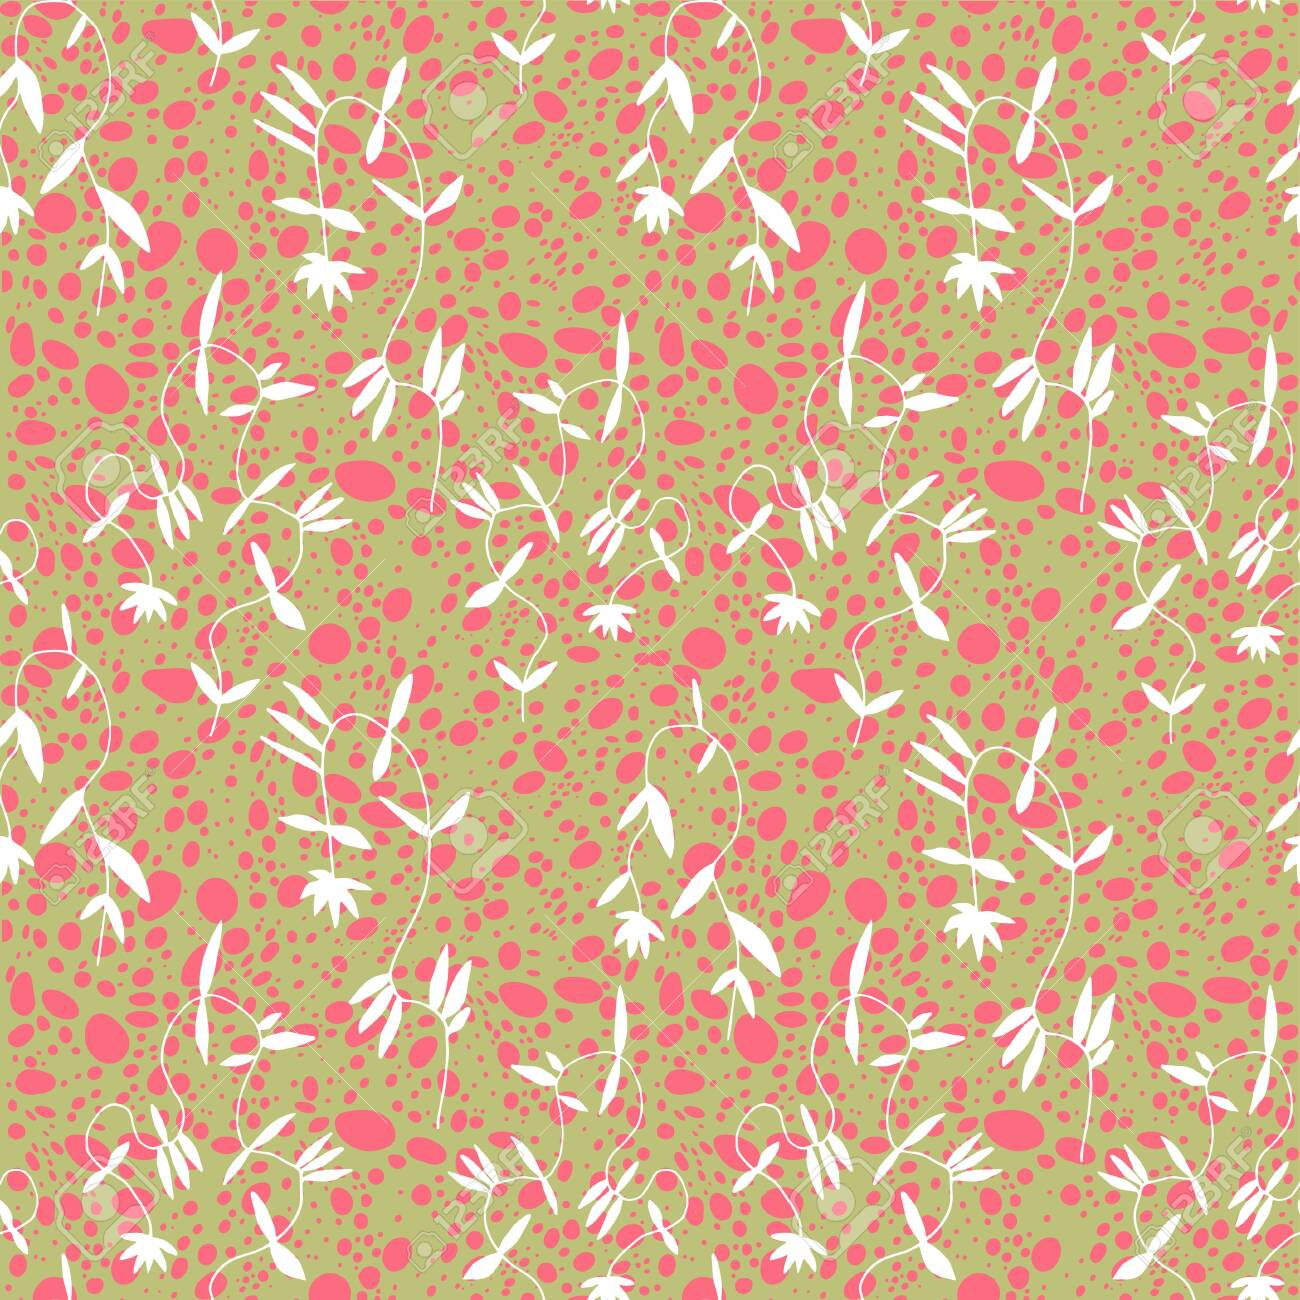 Little Flower Seamless Pattern In Vintage Scandinavian Minimalism Royalty Free Cliparts Vectors And Stock Illustration Image 151198489